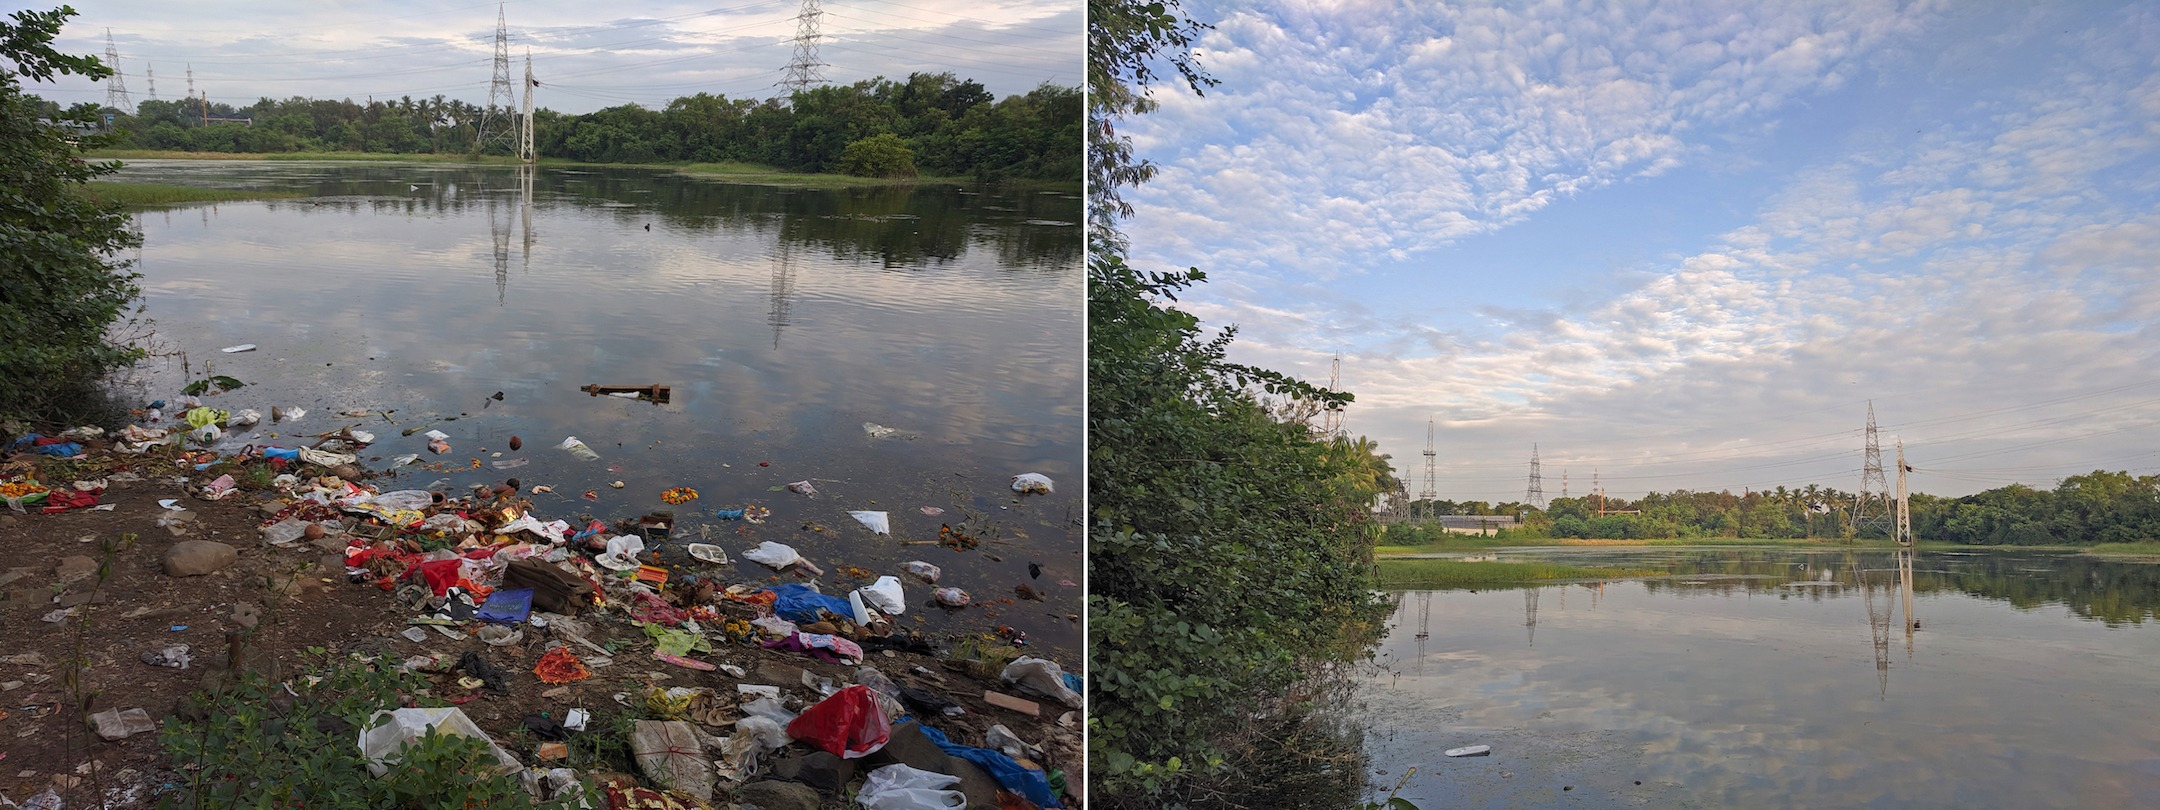 Irresponsible disposal of trash influences the composition of the lake, and the steady aggregation of organic and inorganic pollutants could result in oxygen depletion, thus harming the lake's biodiversity.